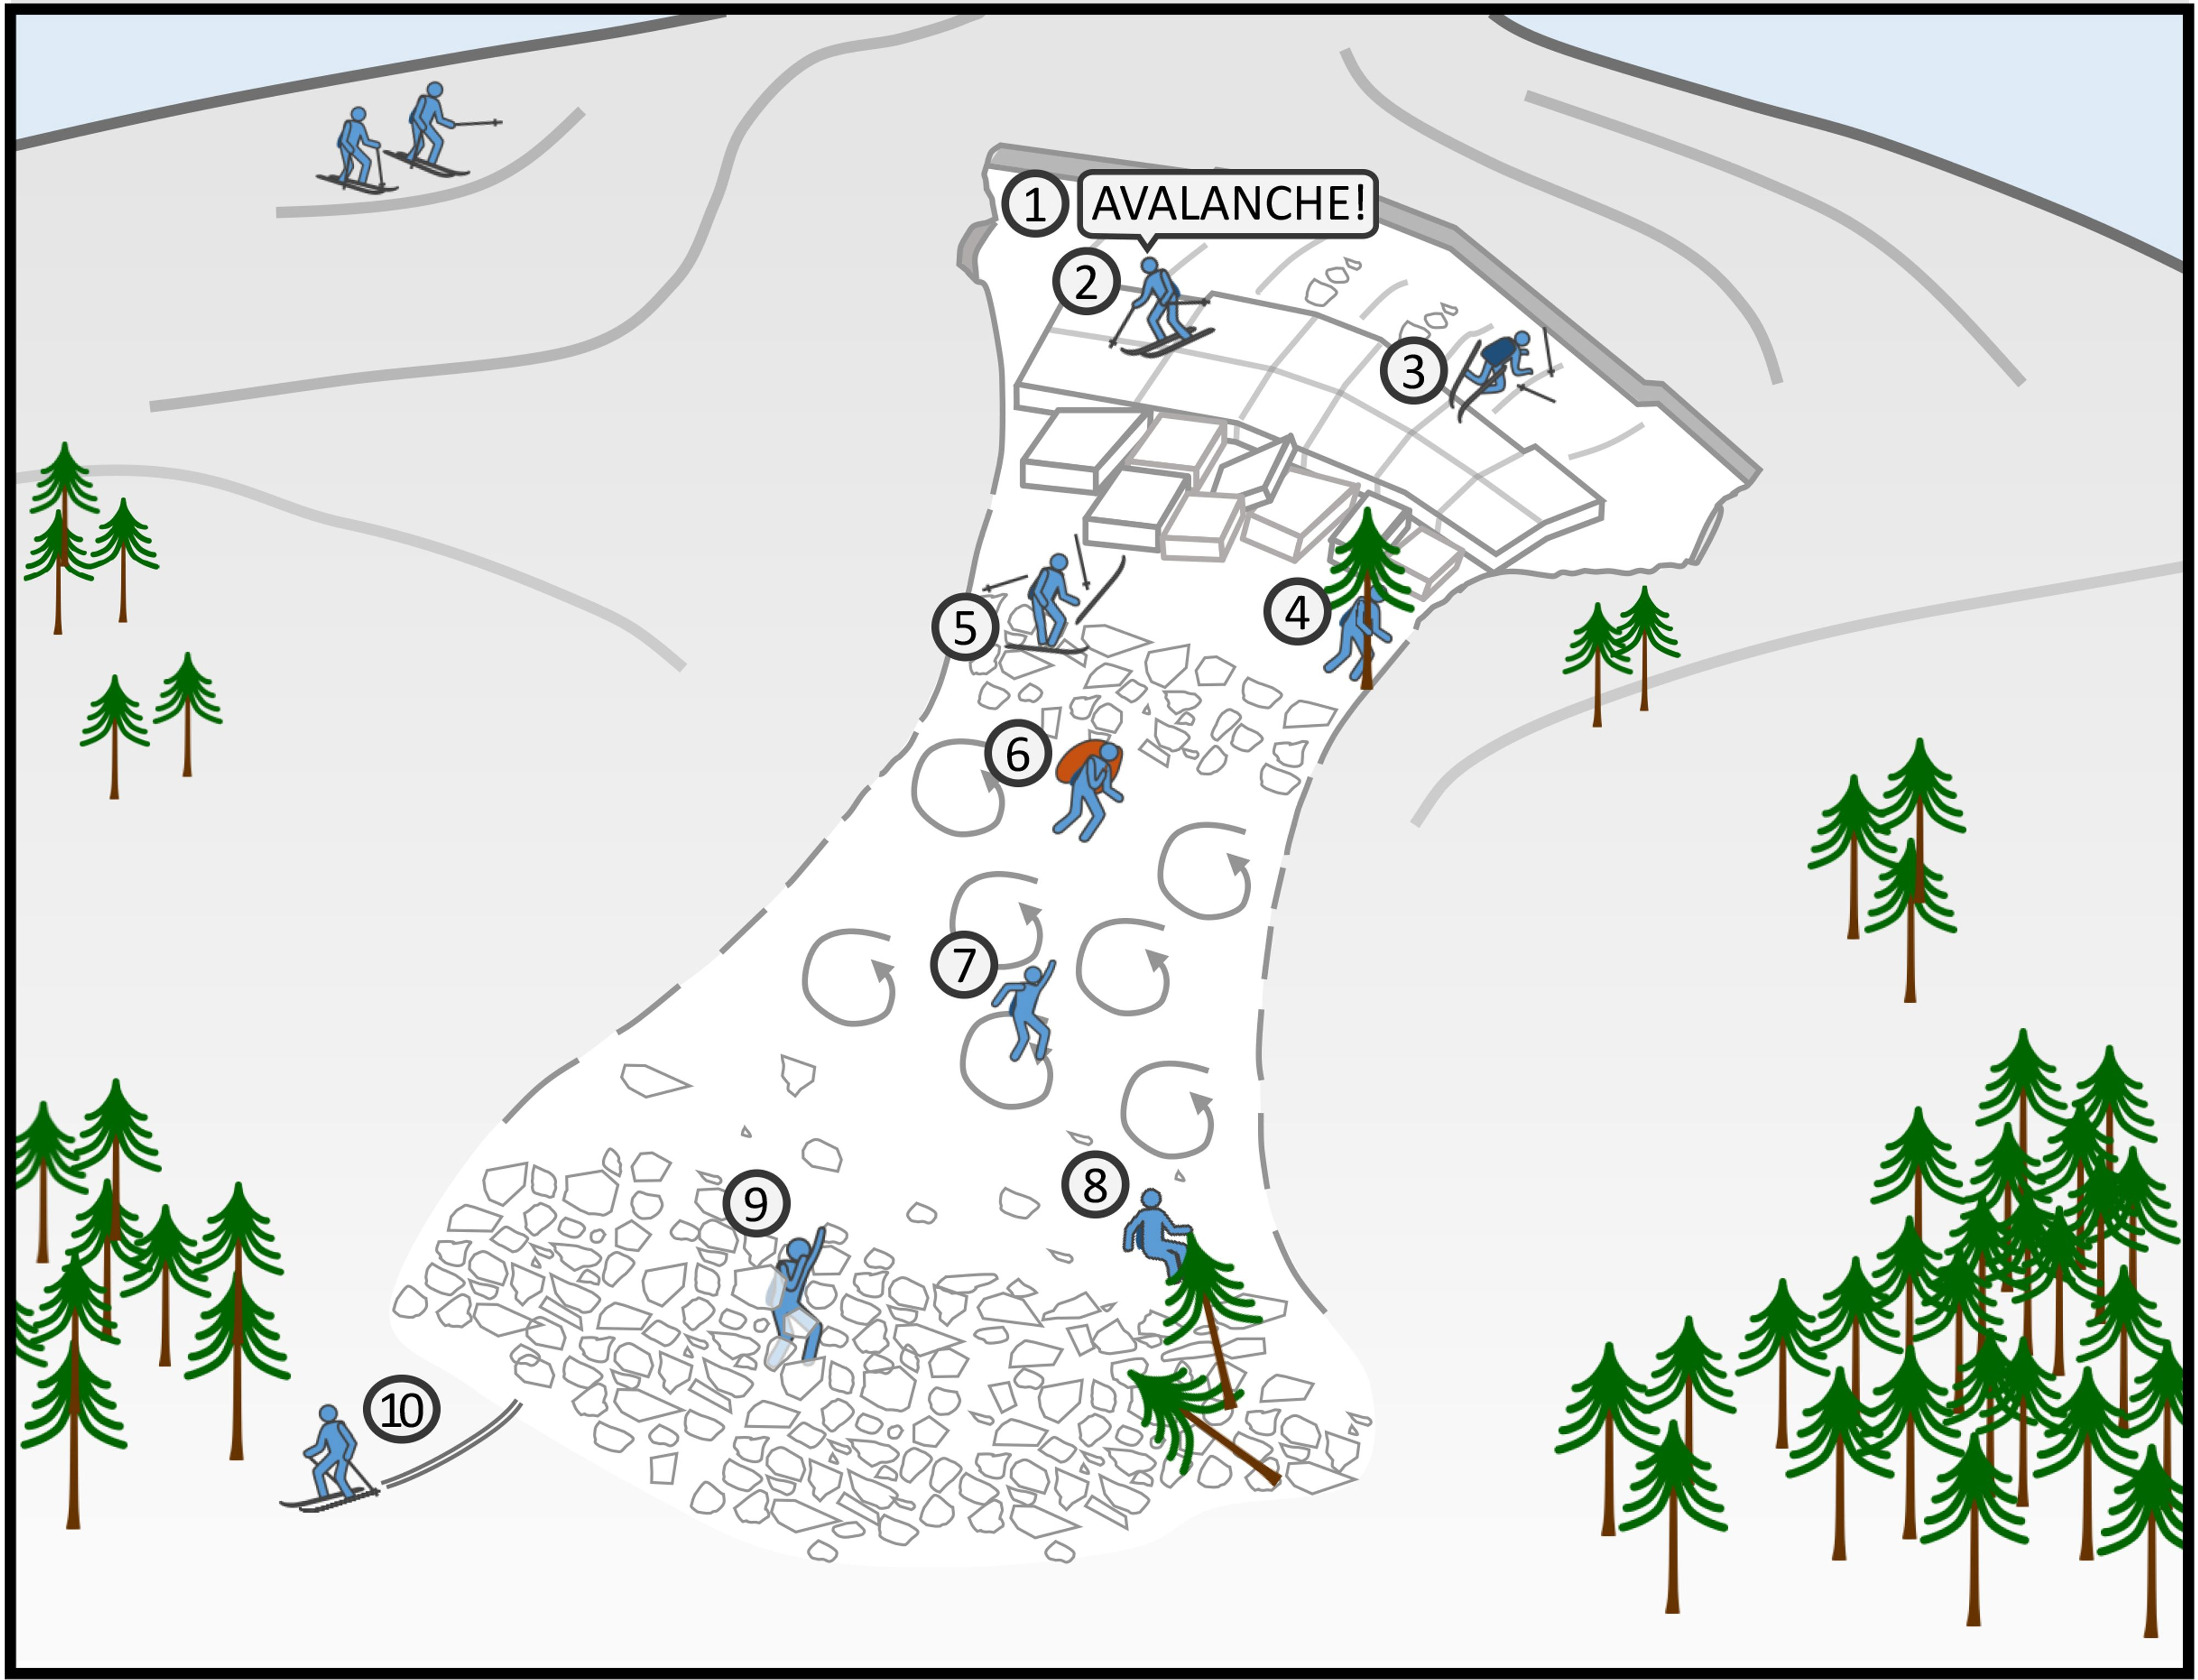 Diagram of how to survive an avalanche while skiing